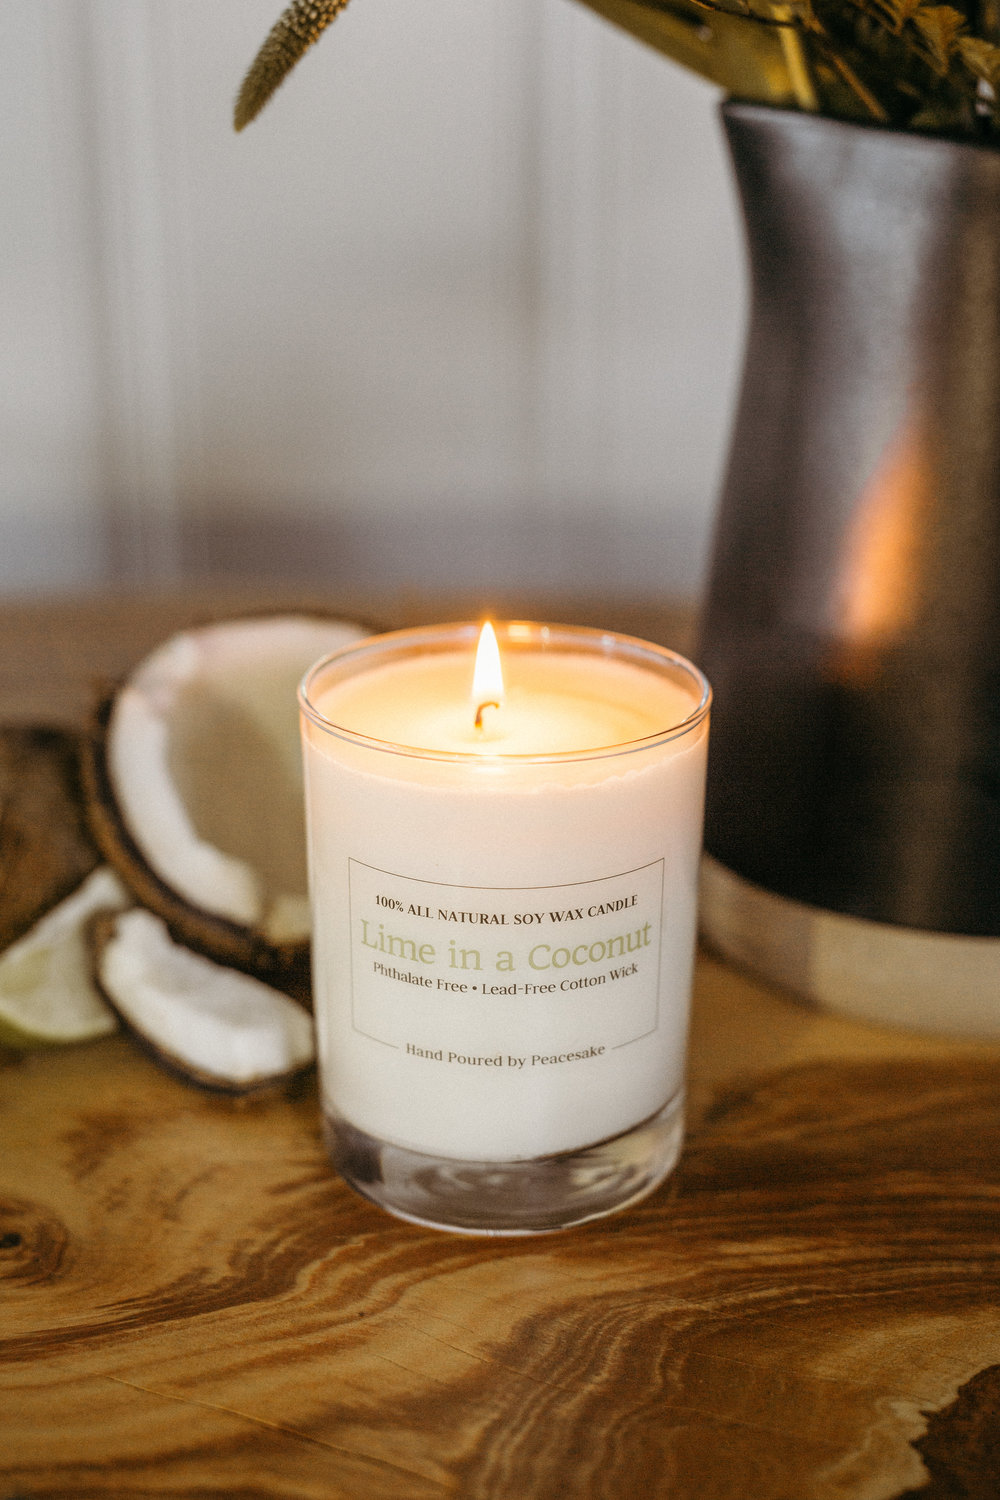 peacesake-all-natural-soy-wax-cotton-wick-vegan-candle-phthalate-free-lime-coconut-beach-summer